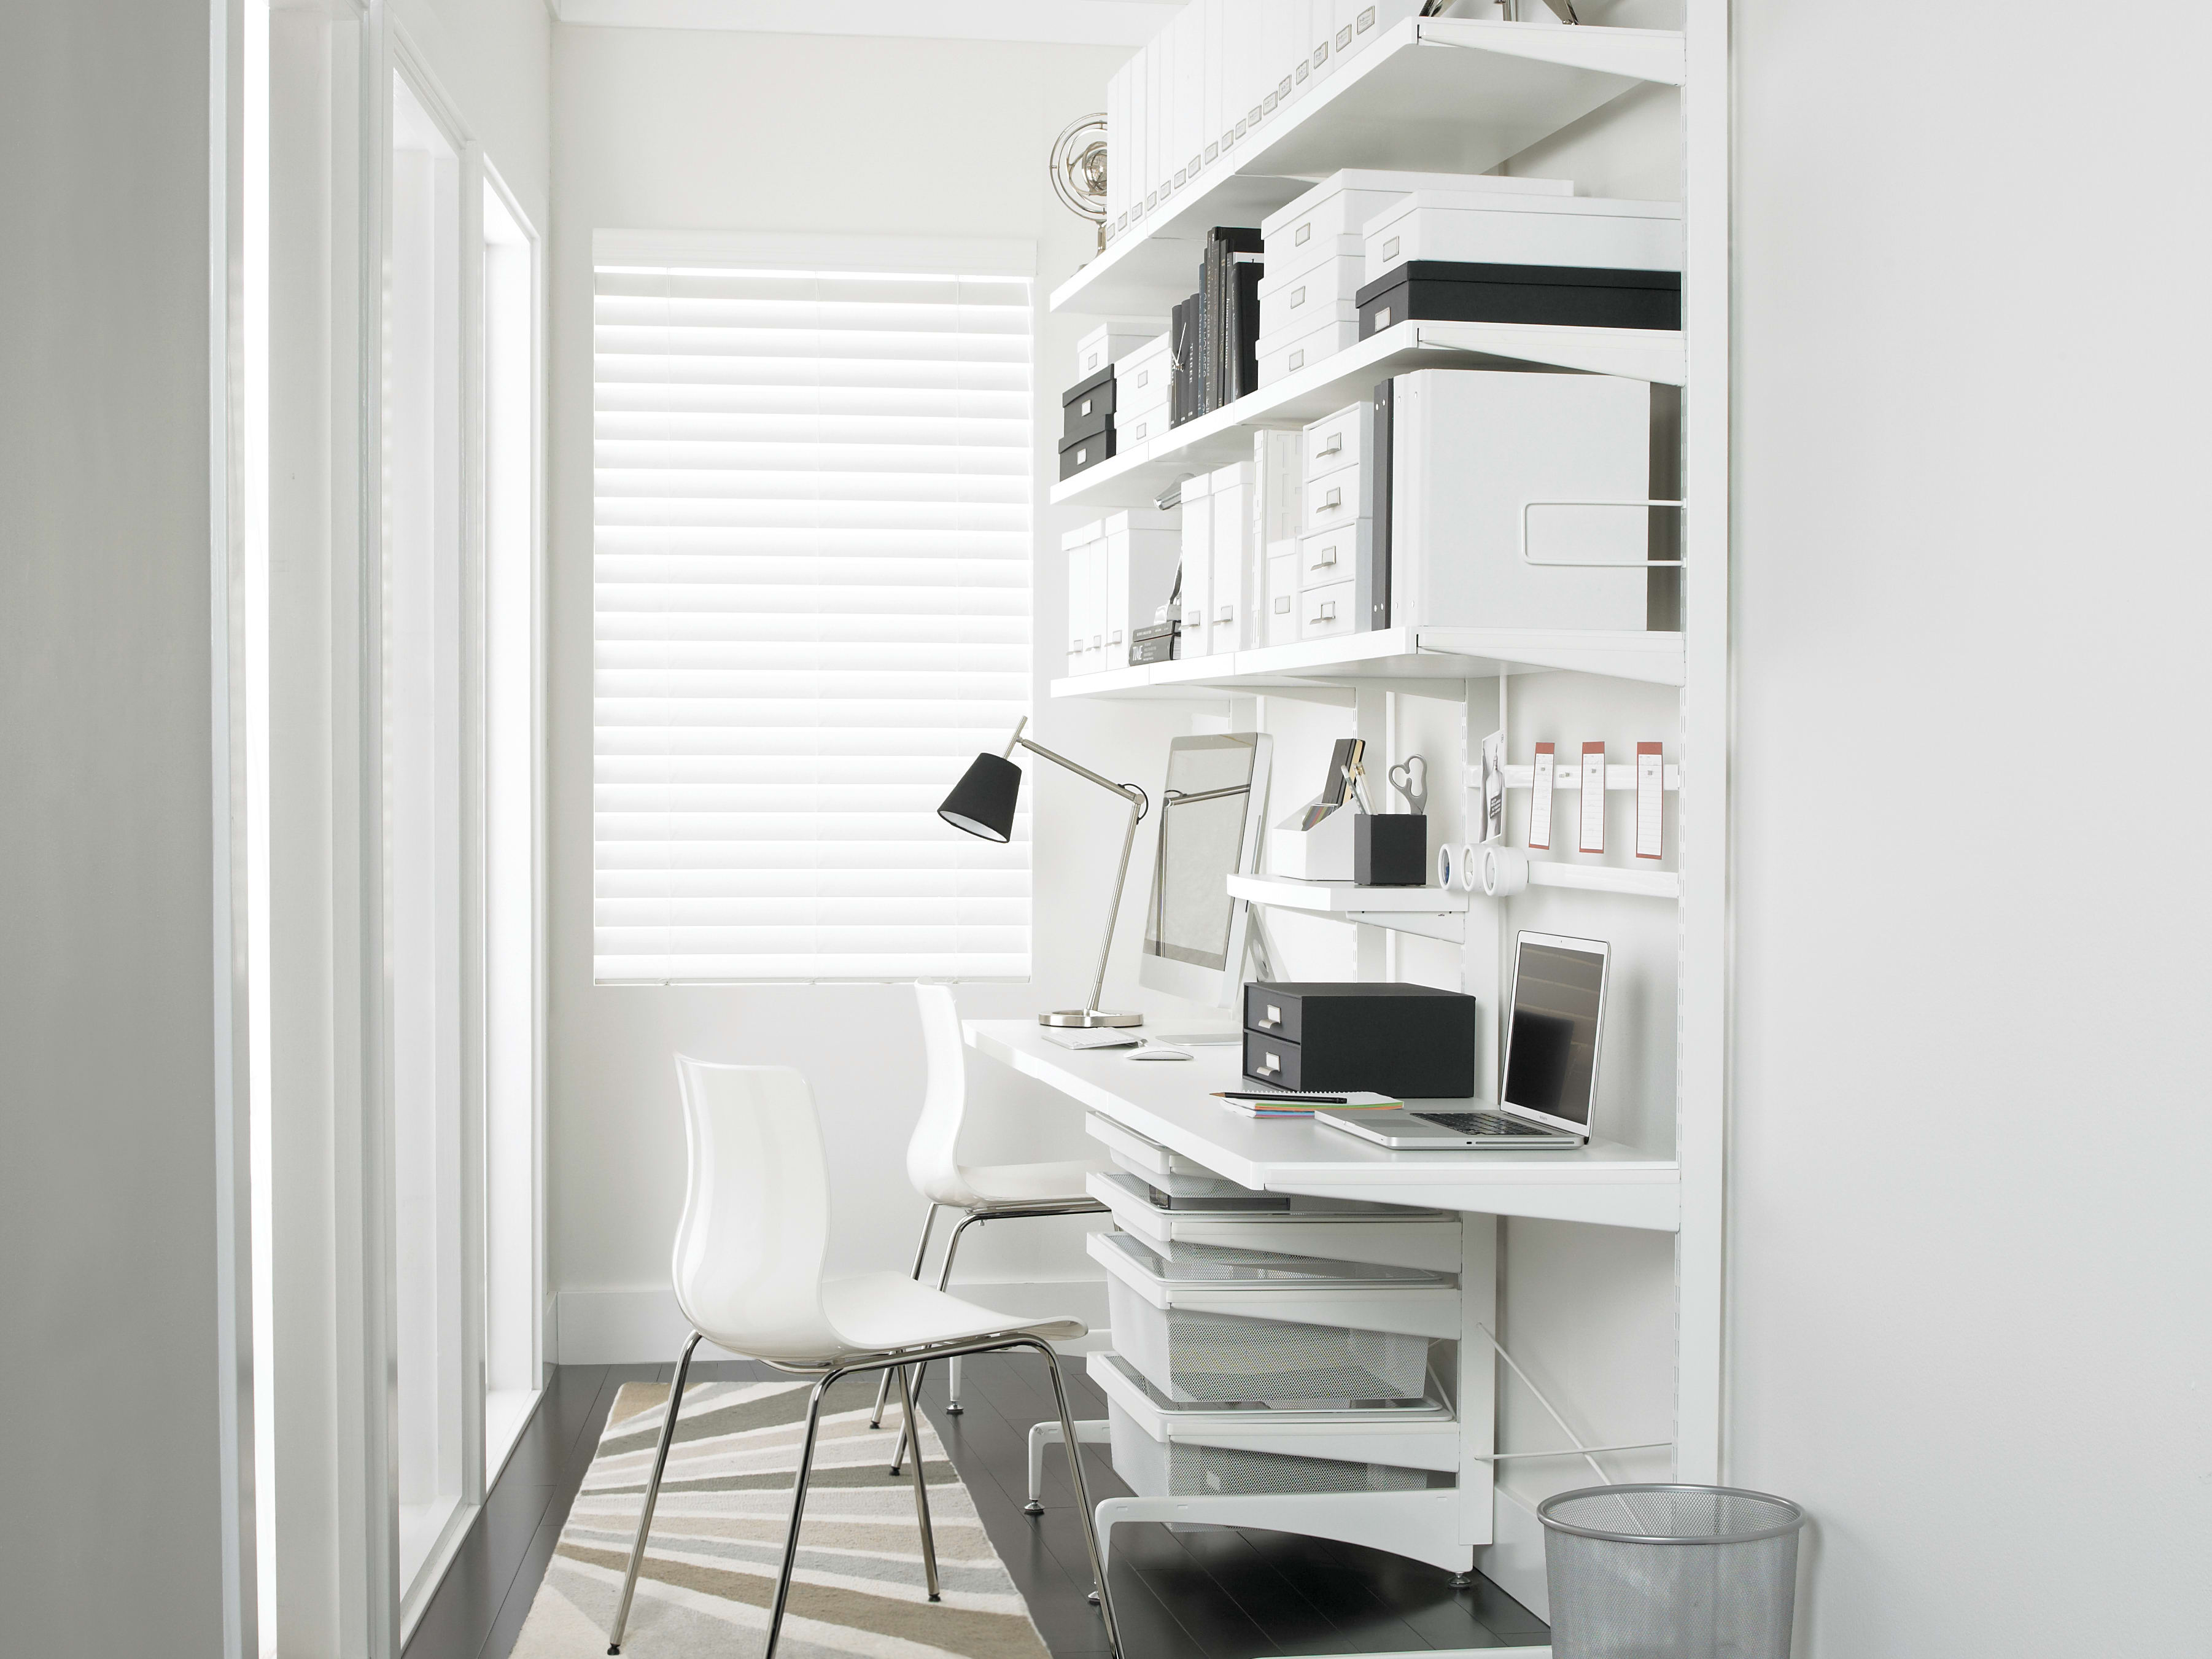 noteborn bv elfa everything can be organized mynewsdesk. Black Bedroom Furniture Sets. Home Design Ideas